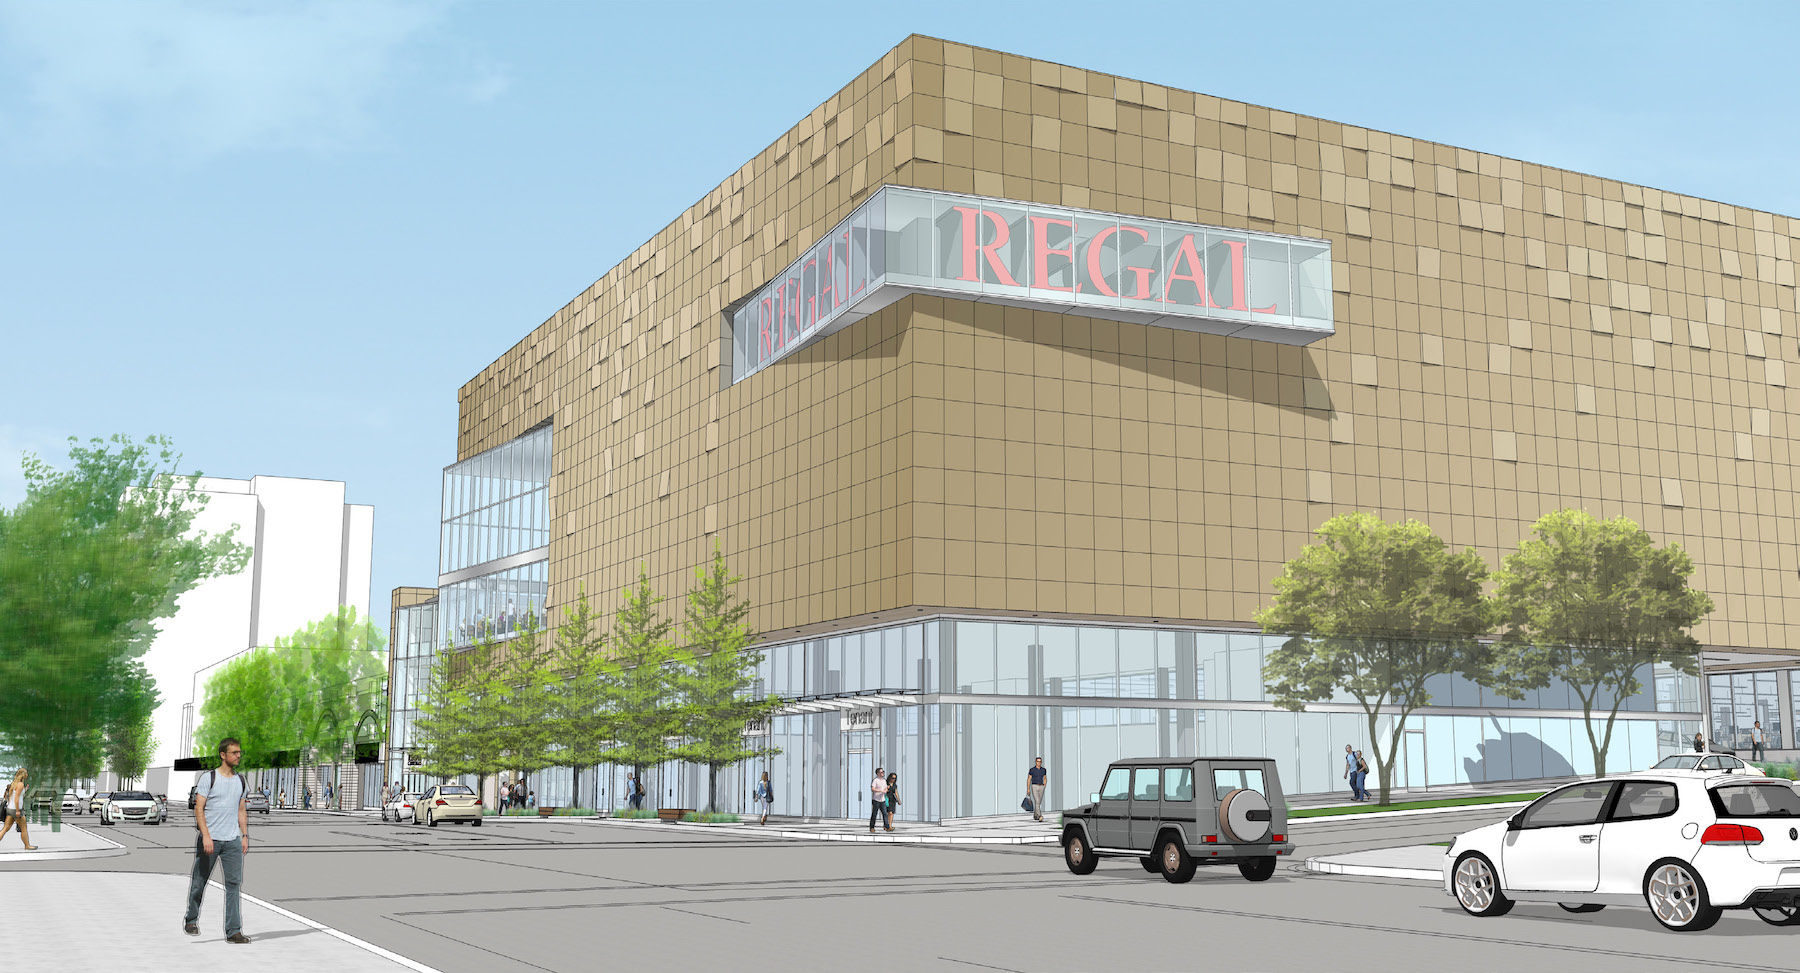 Lloyd Theater East Addition - Regal